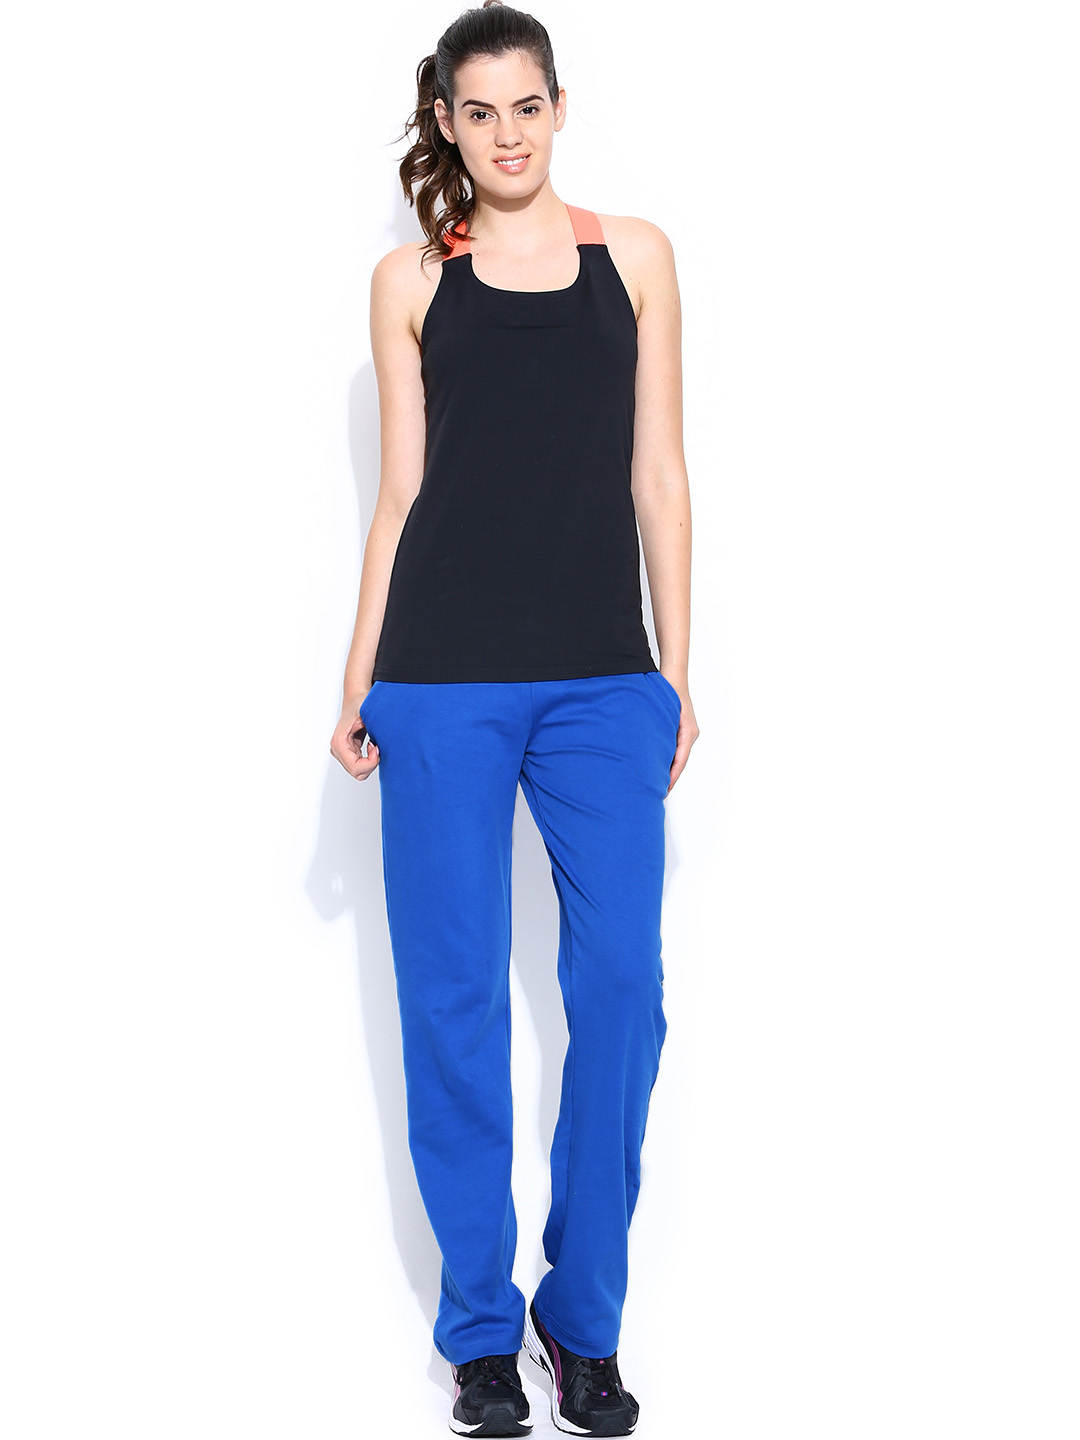 Myntra Alibi Women Blue Track Pants 743315 | Buy Myntra Alibi Track Pants at best price online ...